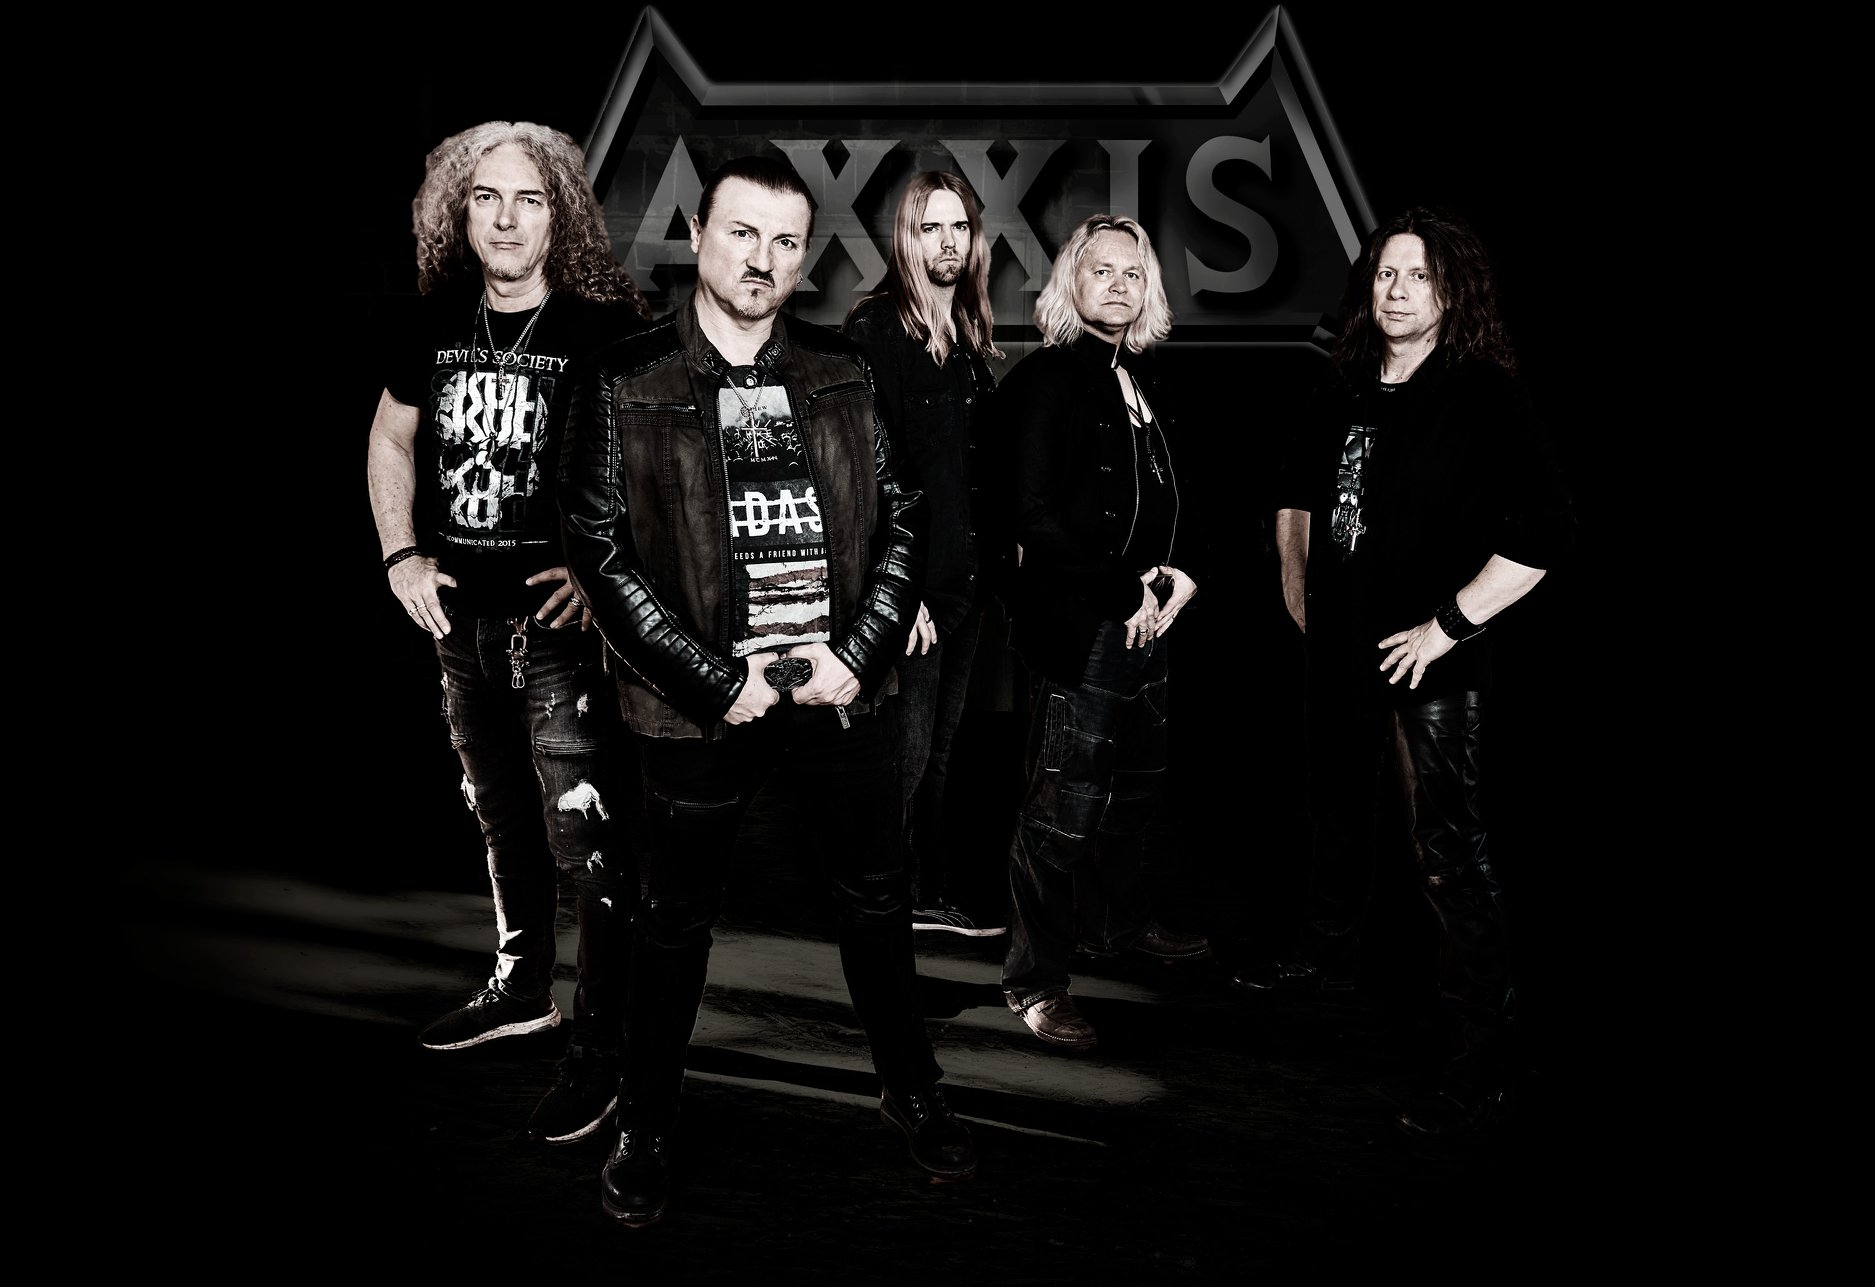 Axxis - Photo